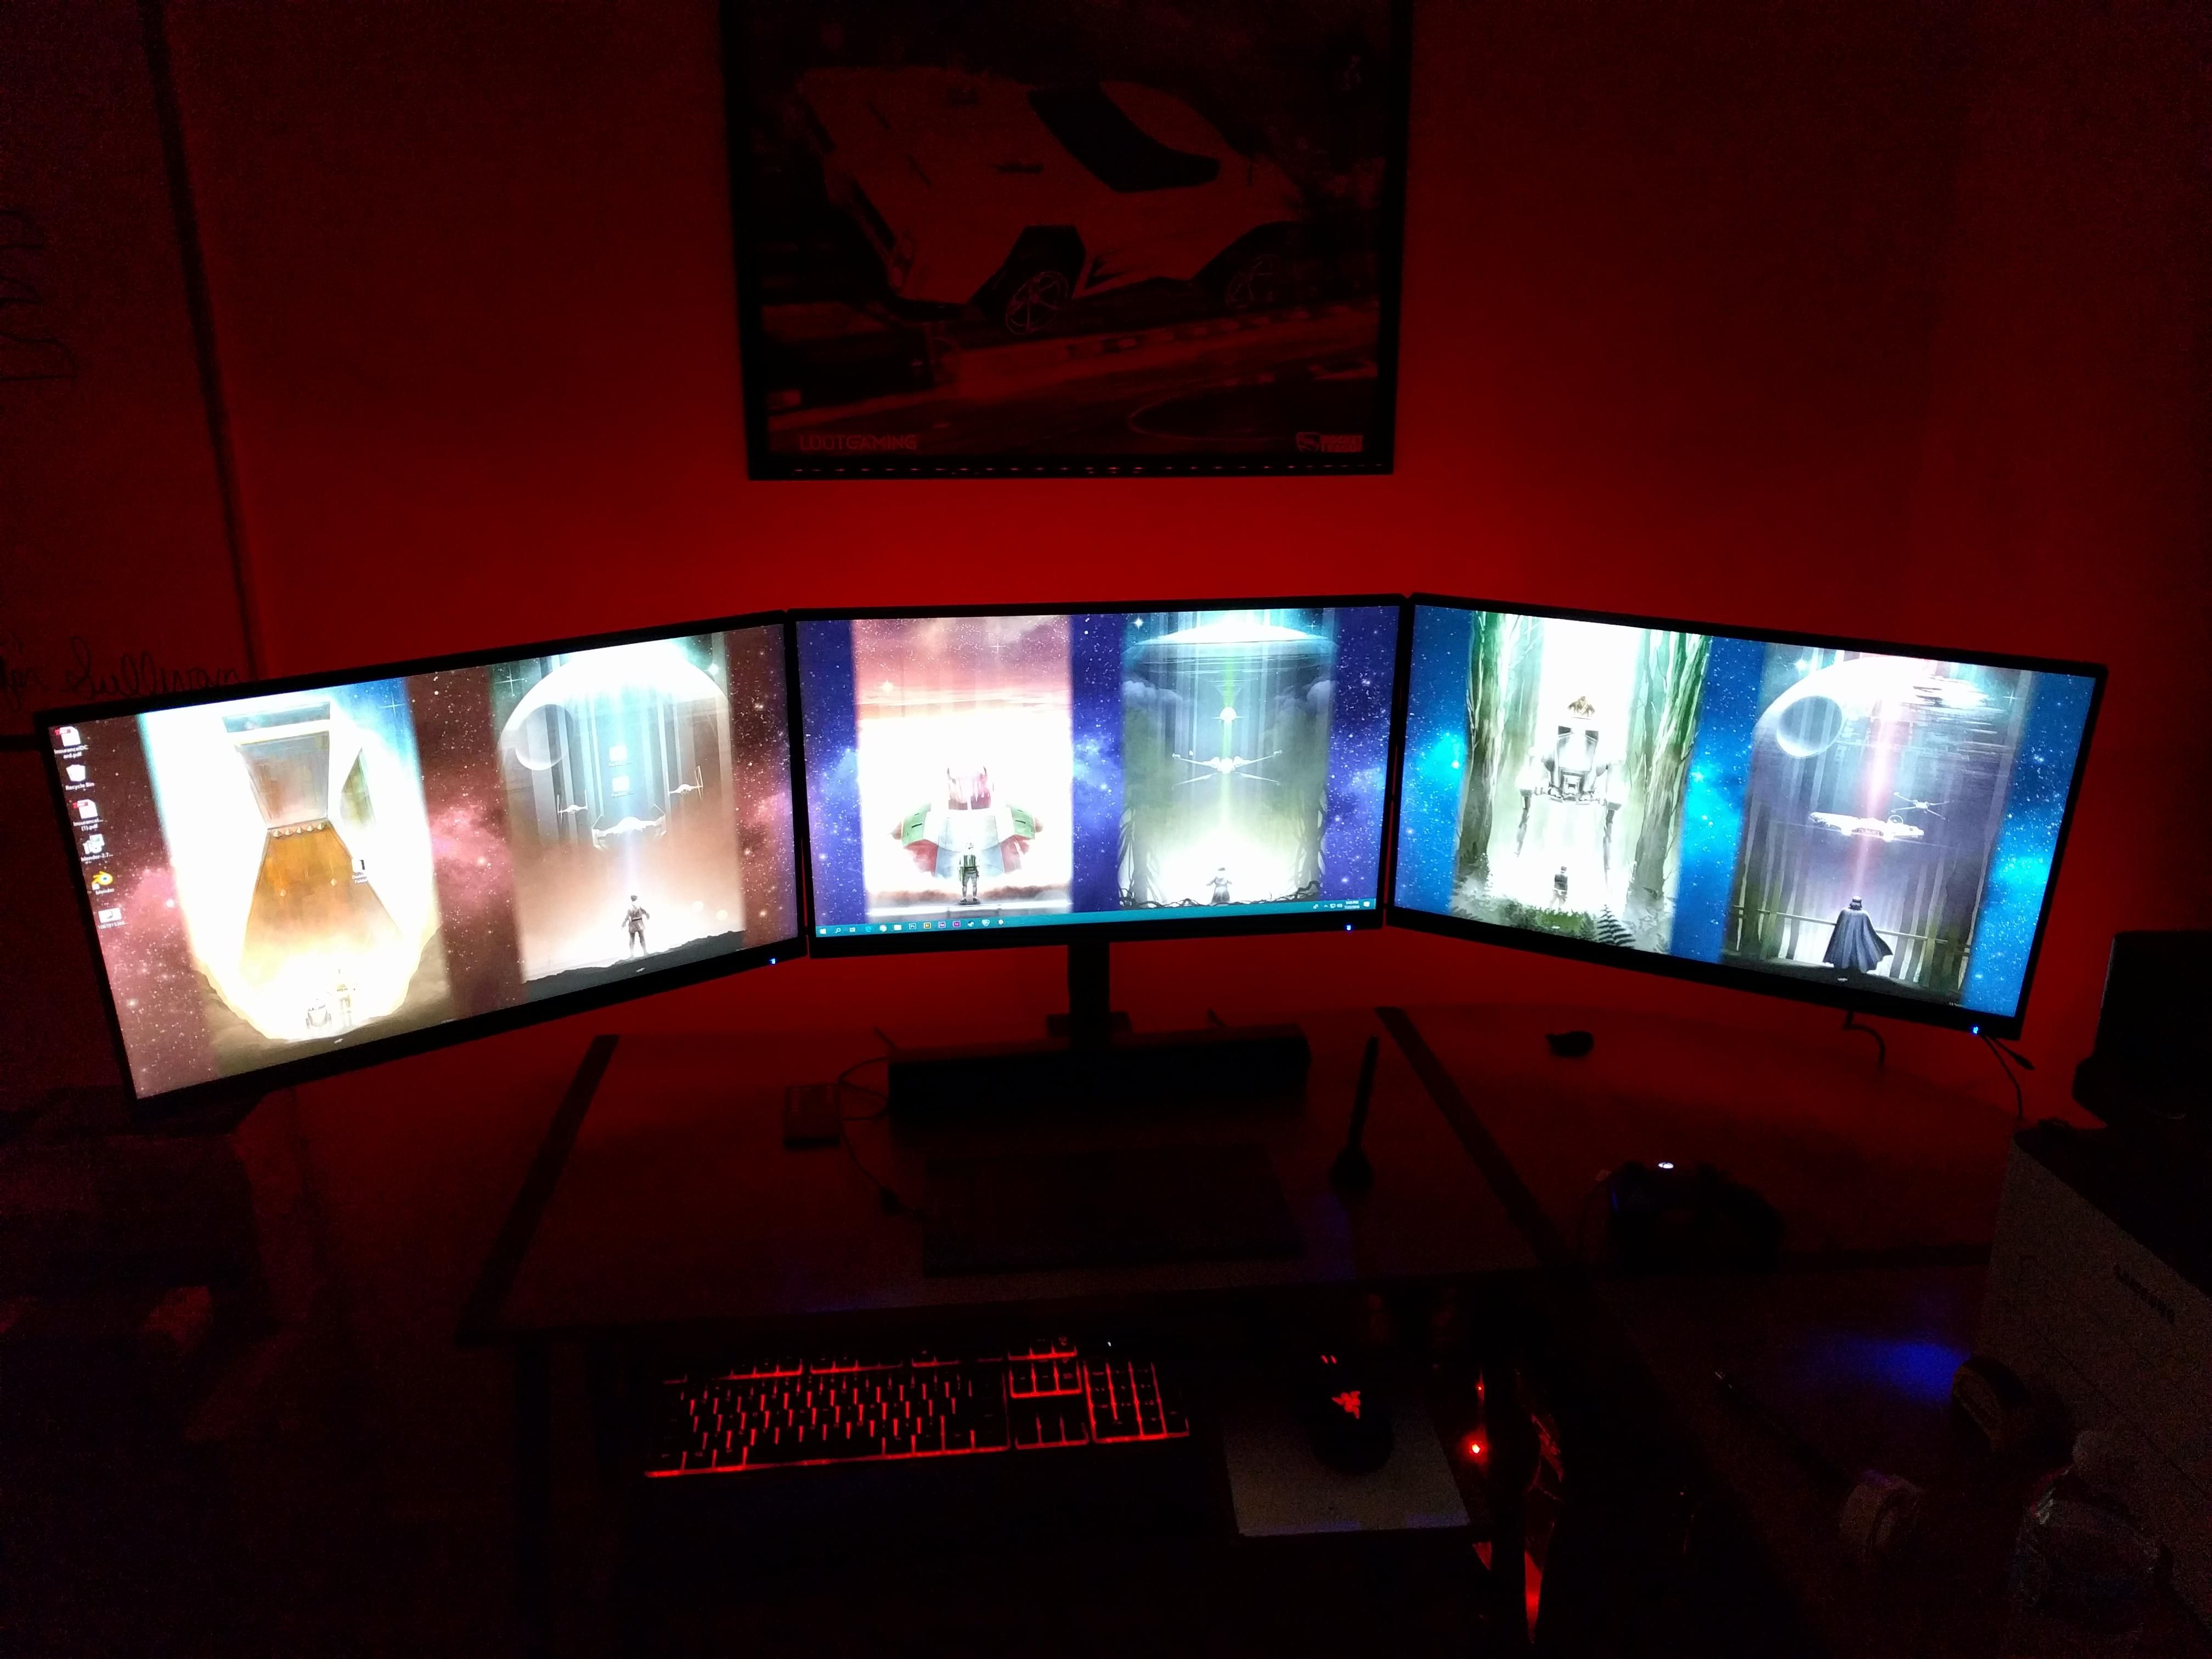 Simple triple monitor setup looking for a dark or red sith